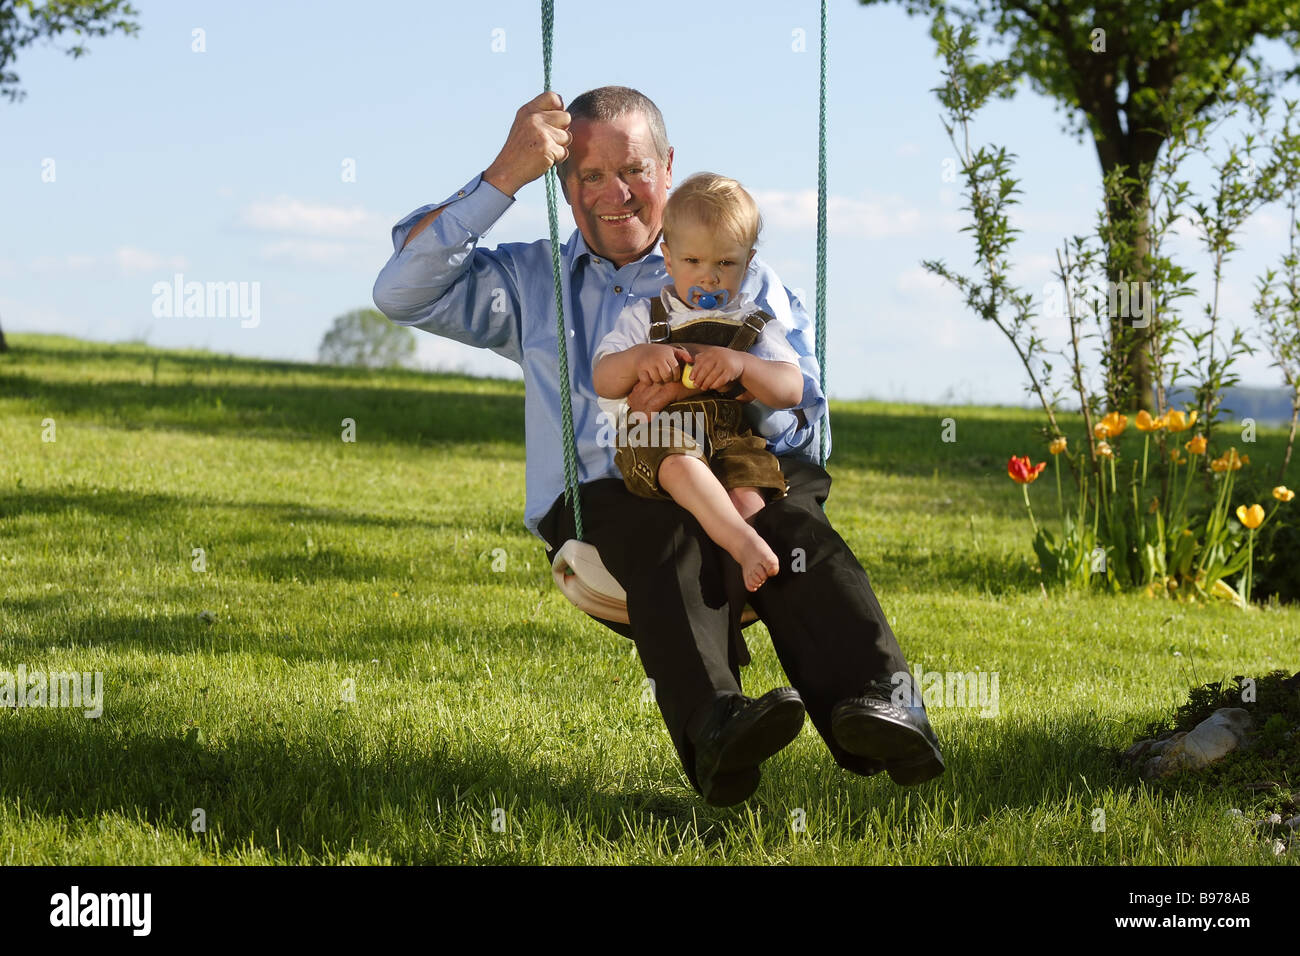 Grandfather with a child on a swing - Stock Image